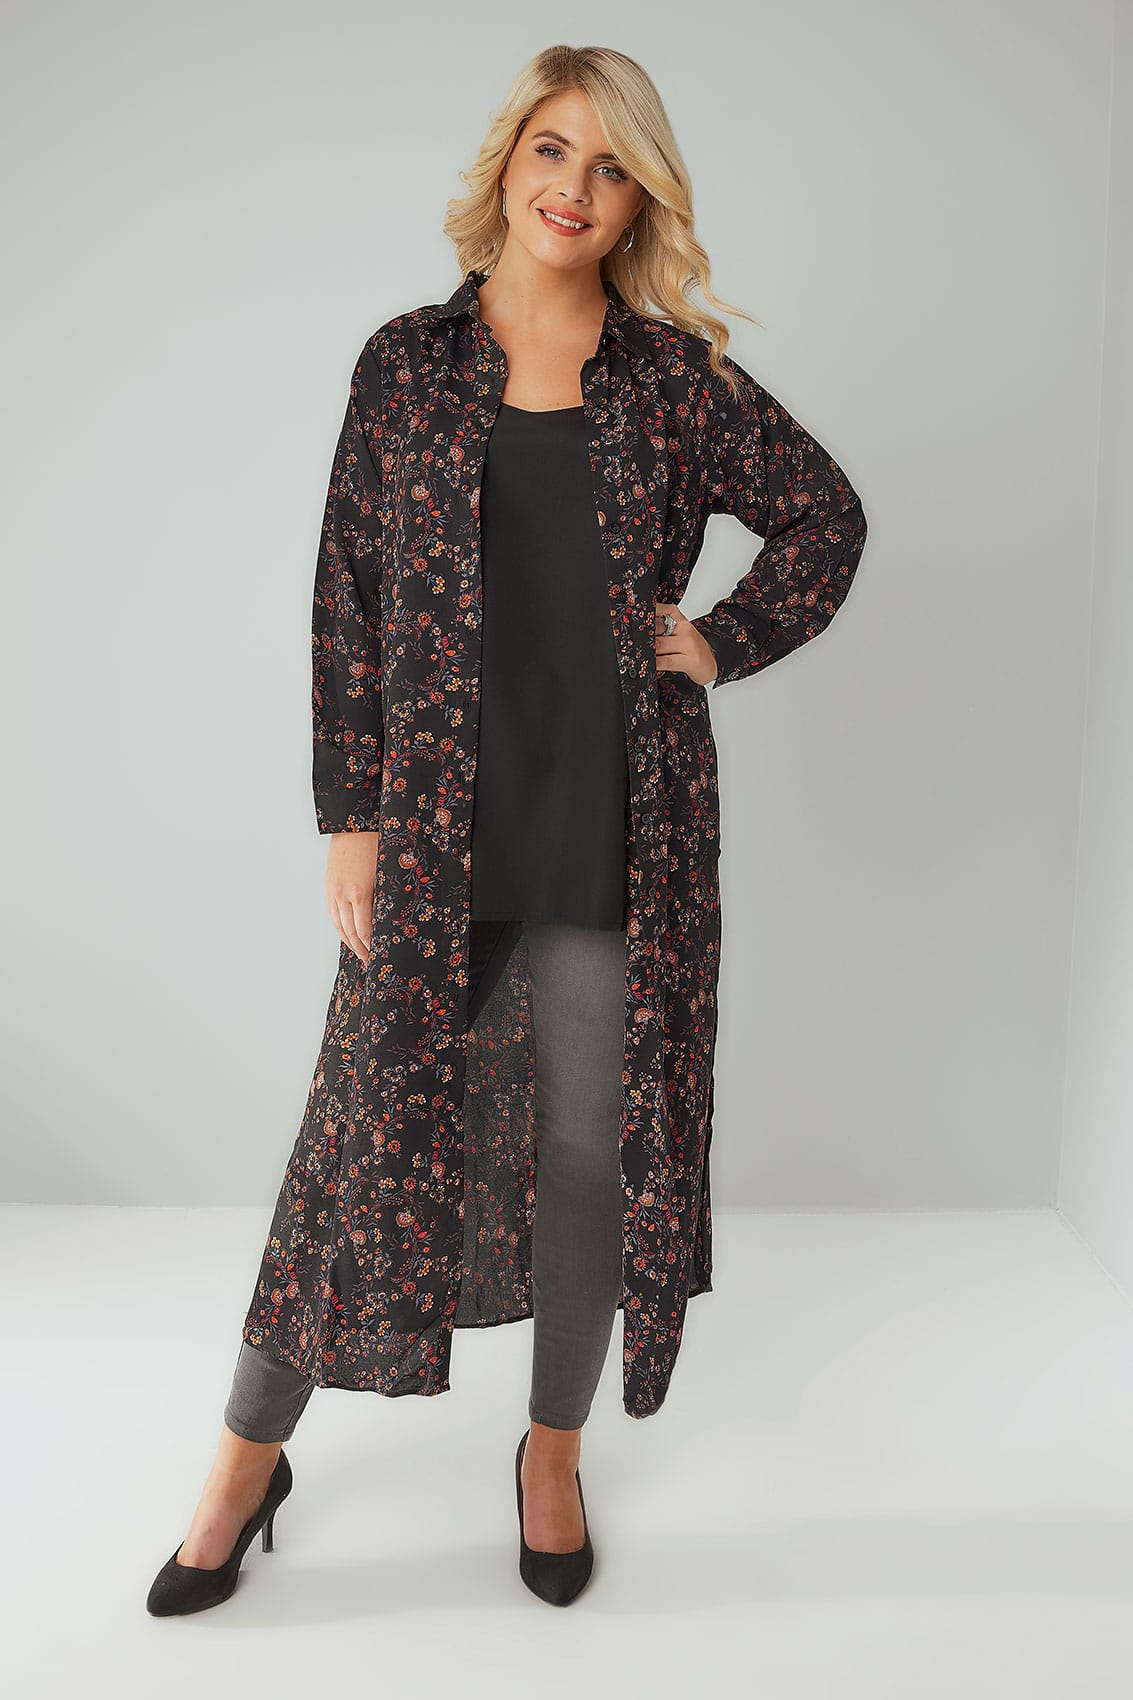 Black Multi Floral Print Maxi Shirt Dress Plus Size 16